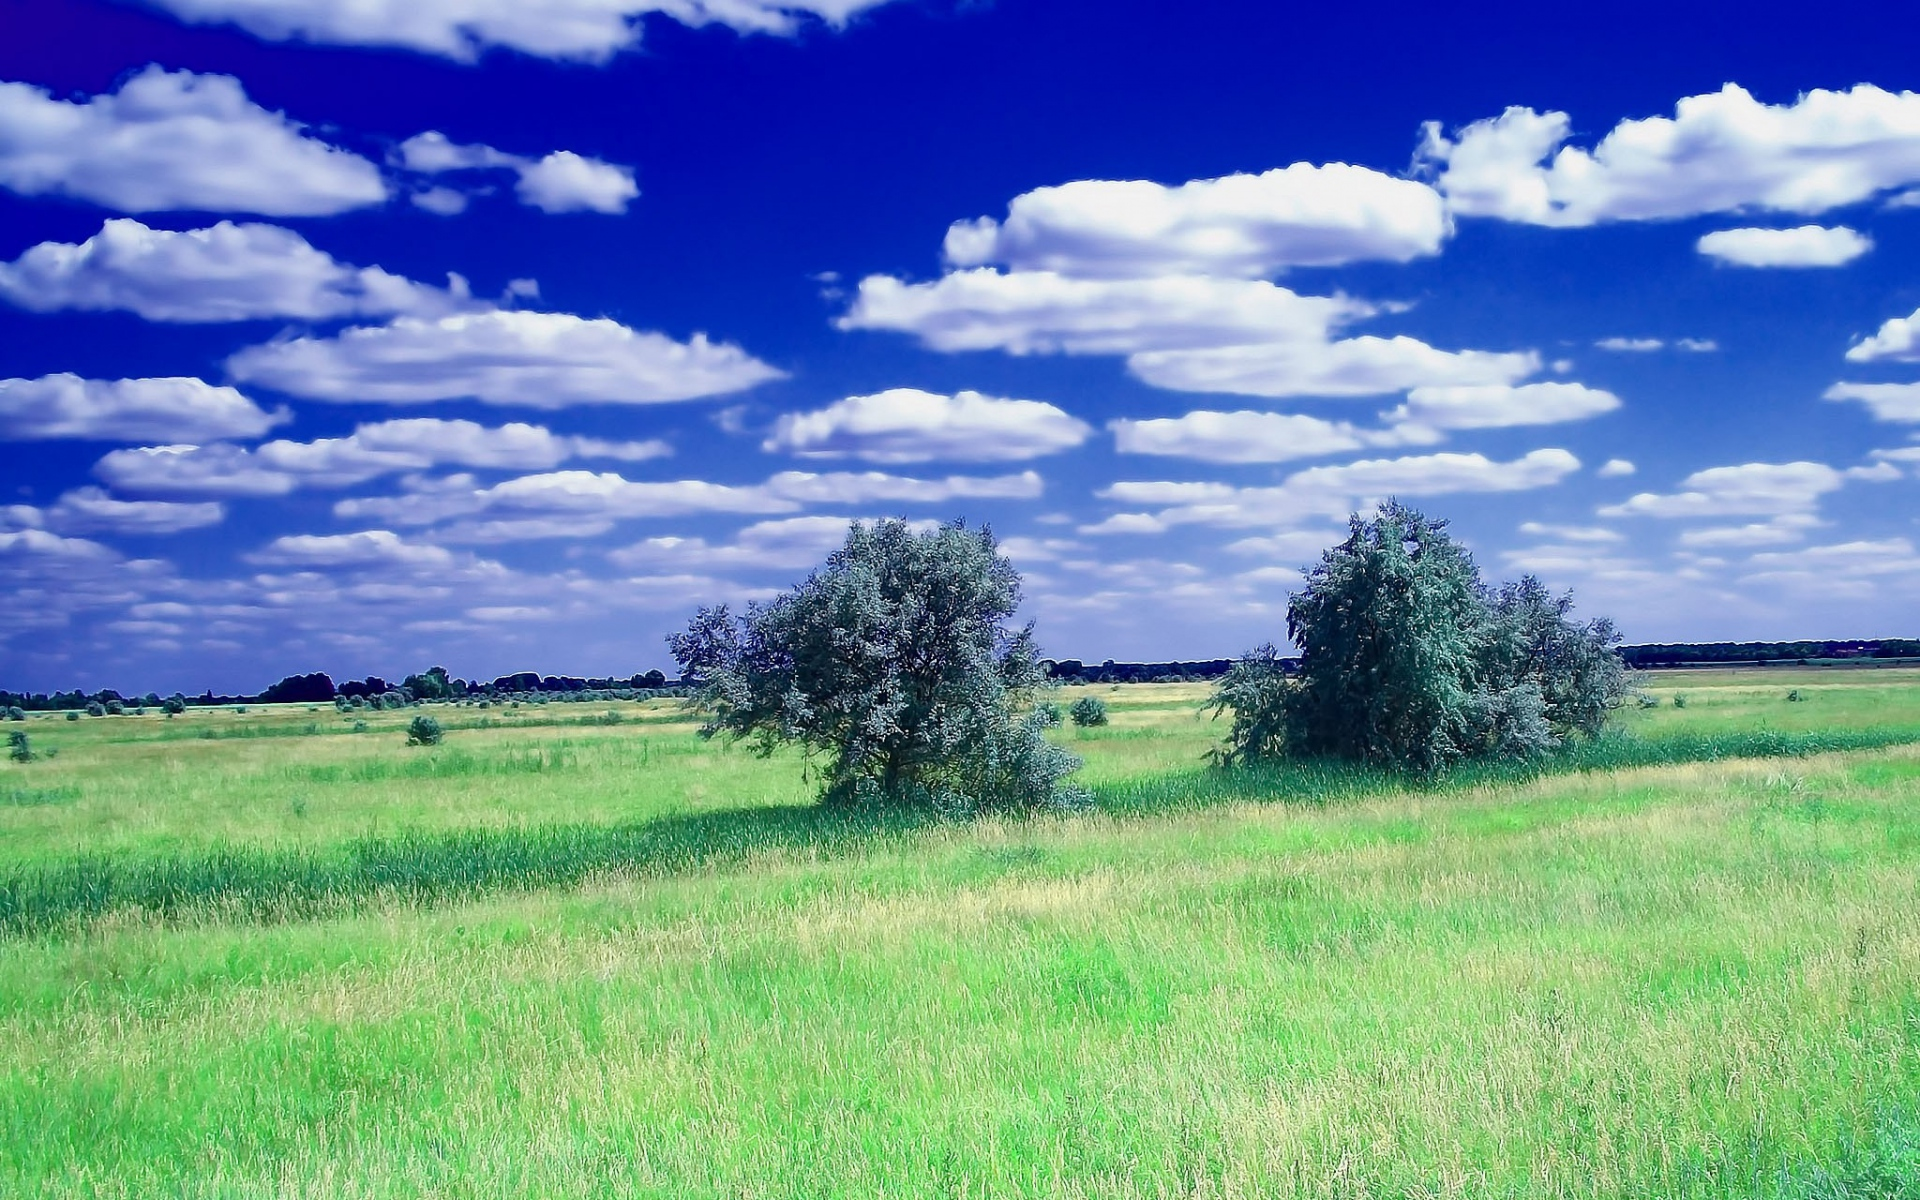 Forest Animated Wallpaper Bushes Grass Field Clouds Sky Wallpapers Bushes Grass